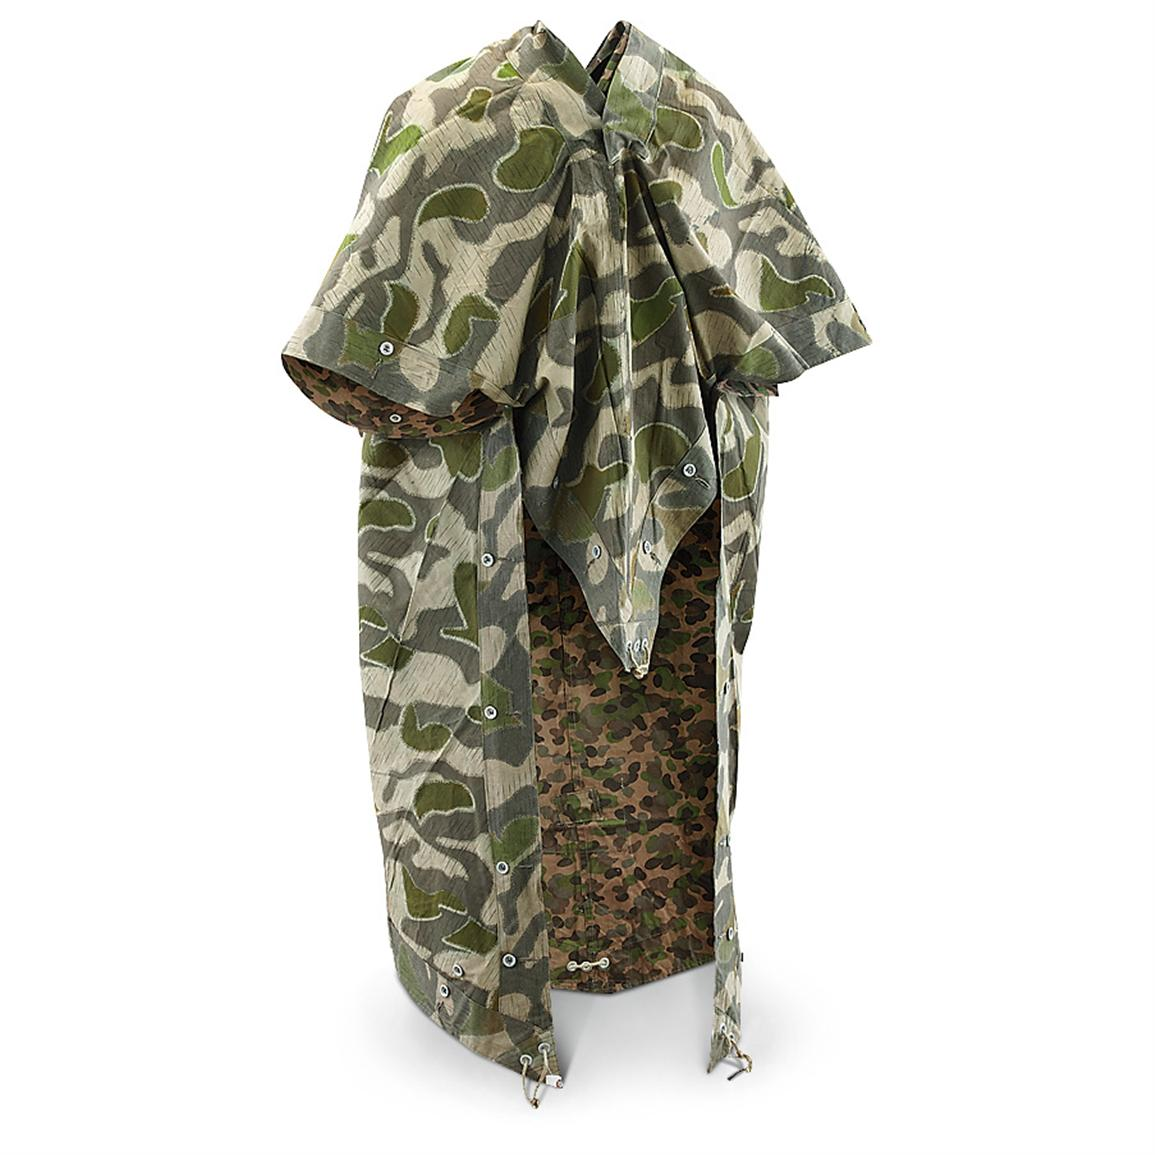 Used Austrian Military Shelter Half, Camo